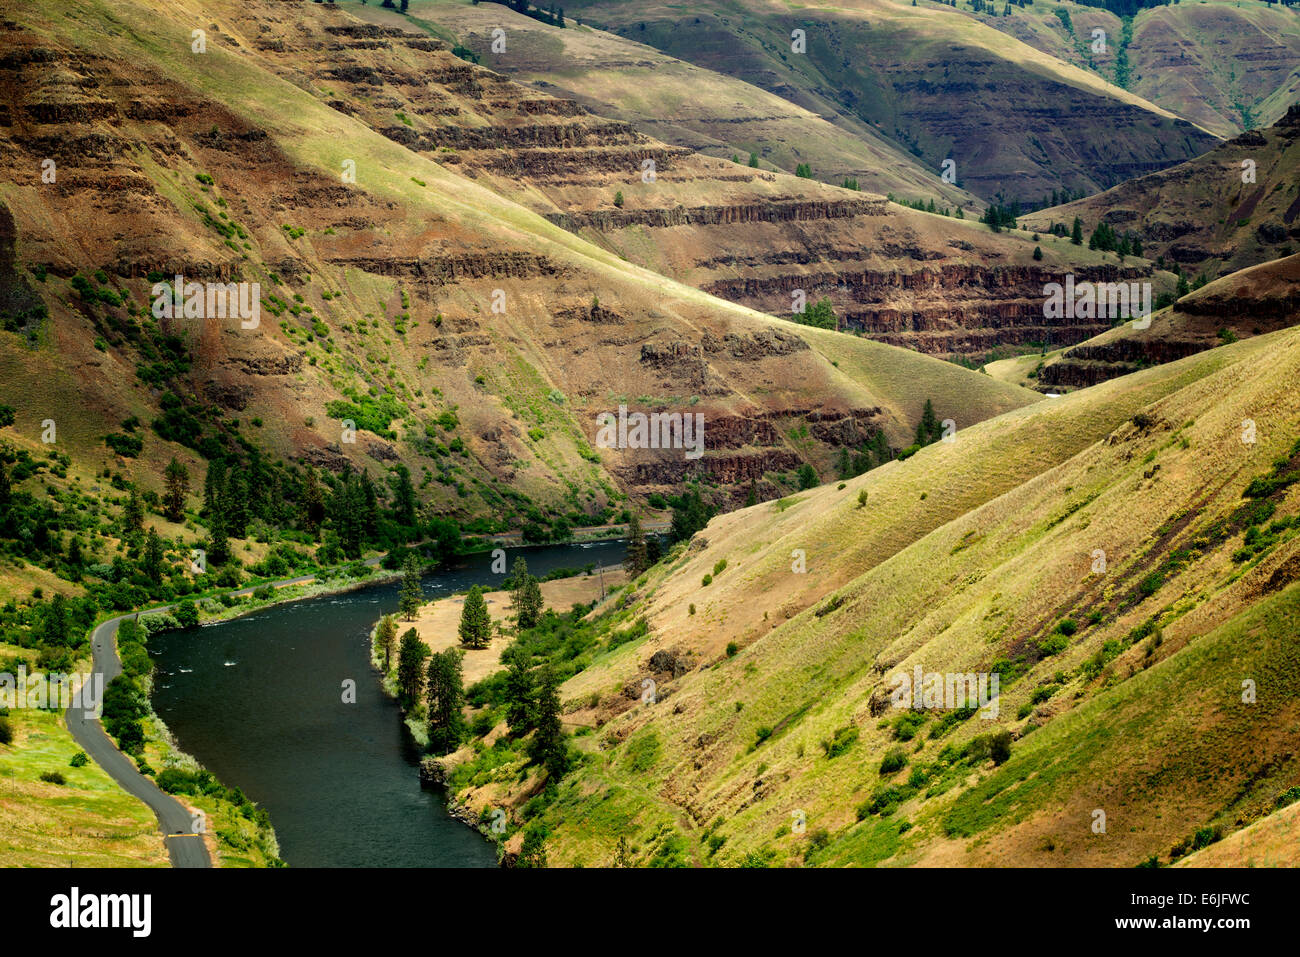 Grand Ronde Wild and Scenic River and canyon. Oregon - Stock Image